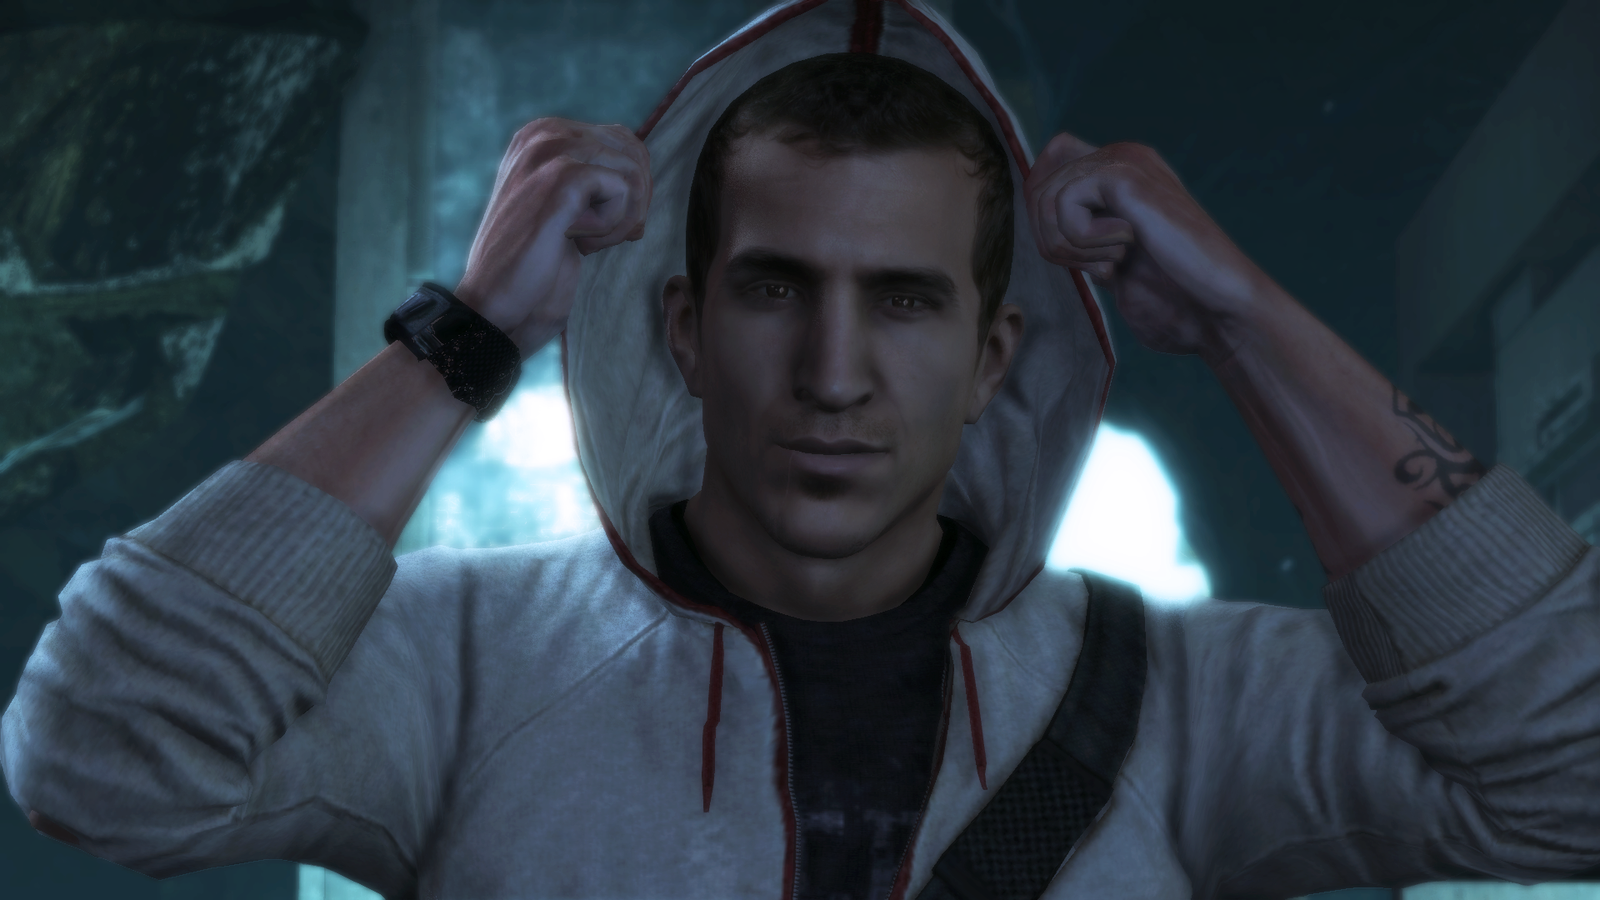 http://fc06.deviantart.net/fs71/i/2013/014/d/c/desmond_miles___assassin__s_creed_iii_by_nylah22-d5rie09.png